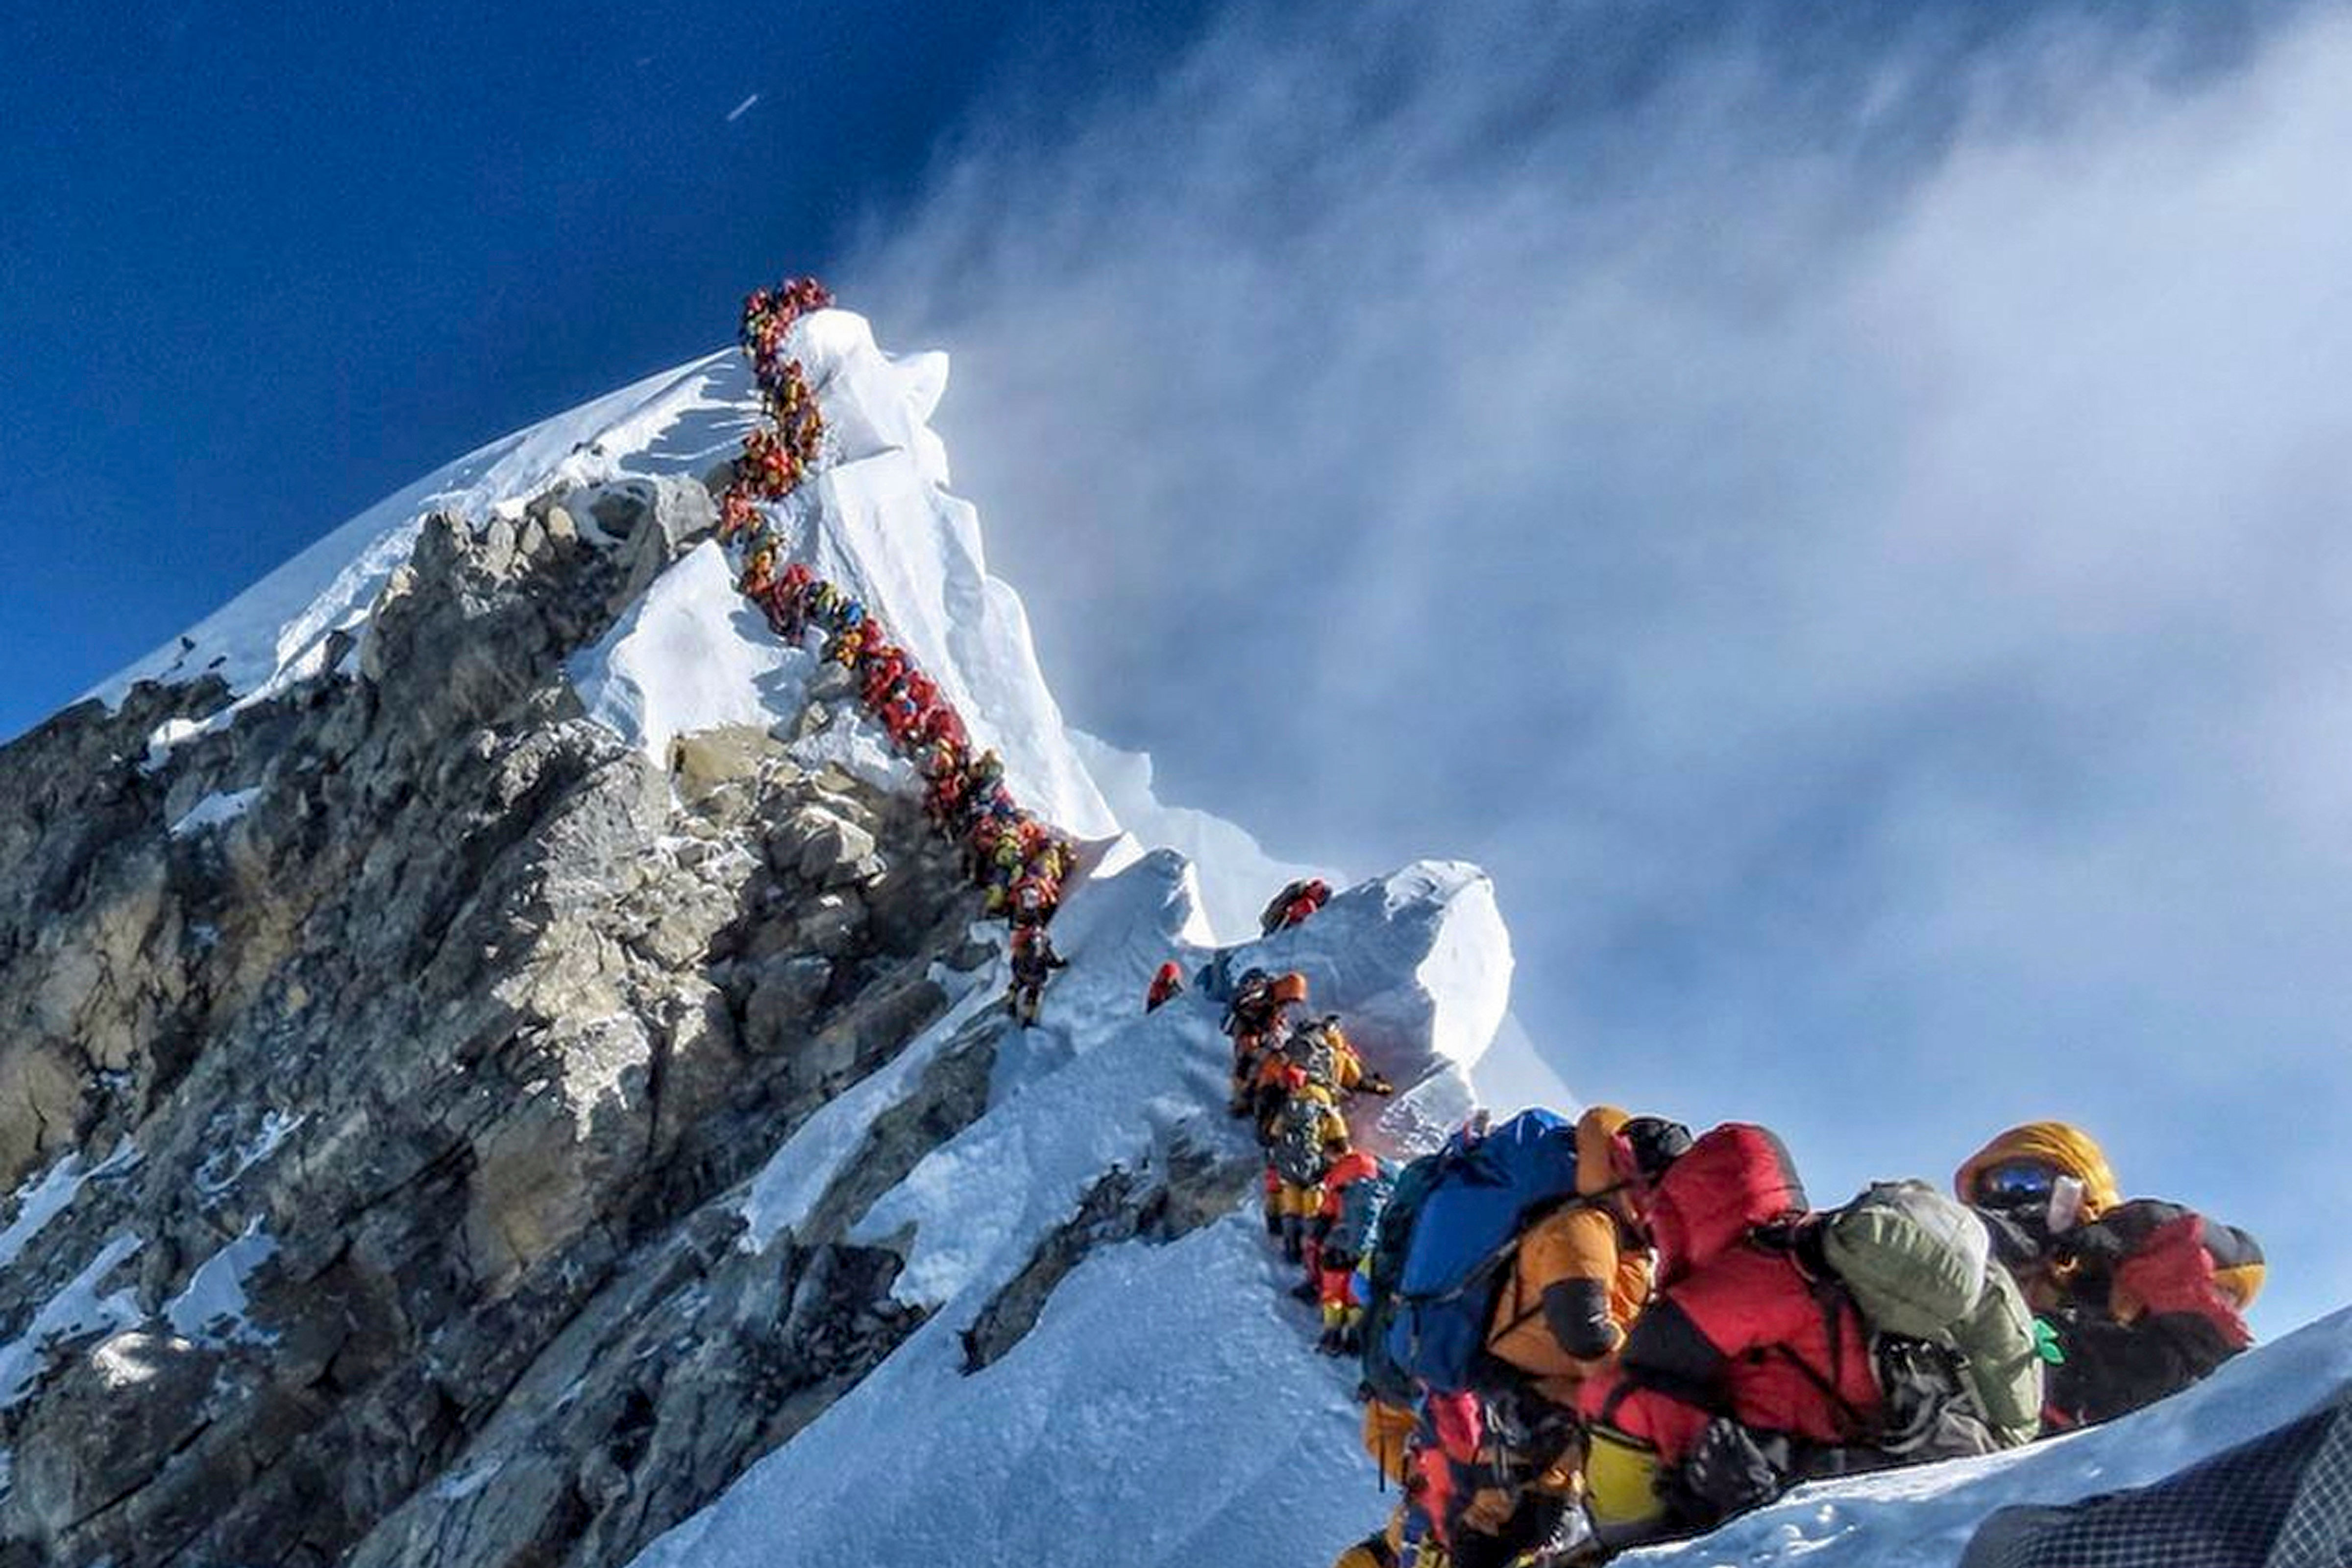 <p>In this photo made on May 22, 2019, a long queue of mountain climbers line a path on Mount Everest. About half a dozen climbers died on Everest last week most while descending from the congested summit during only a few windows of good weather each May.</p>